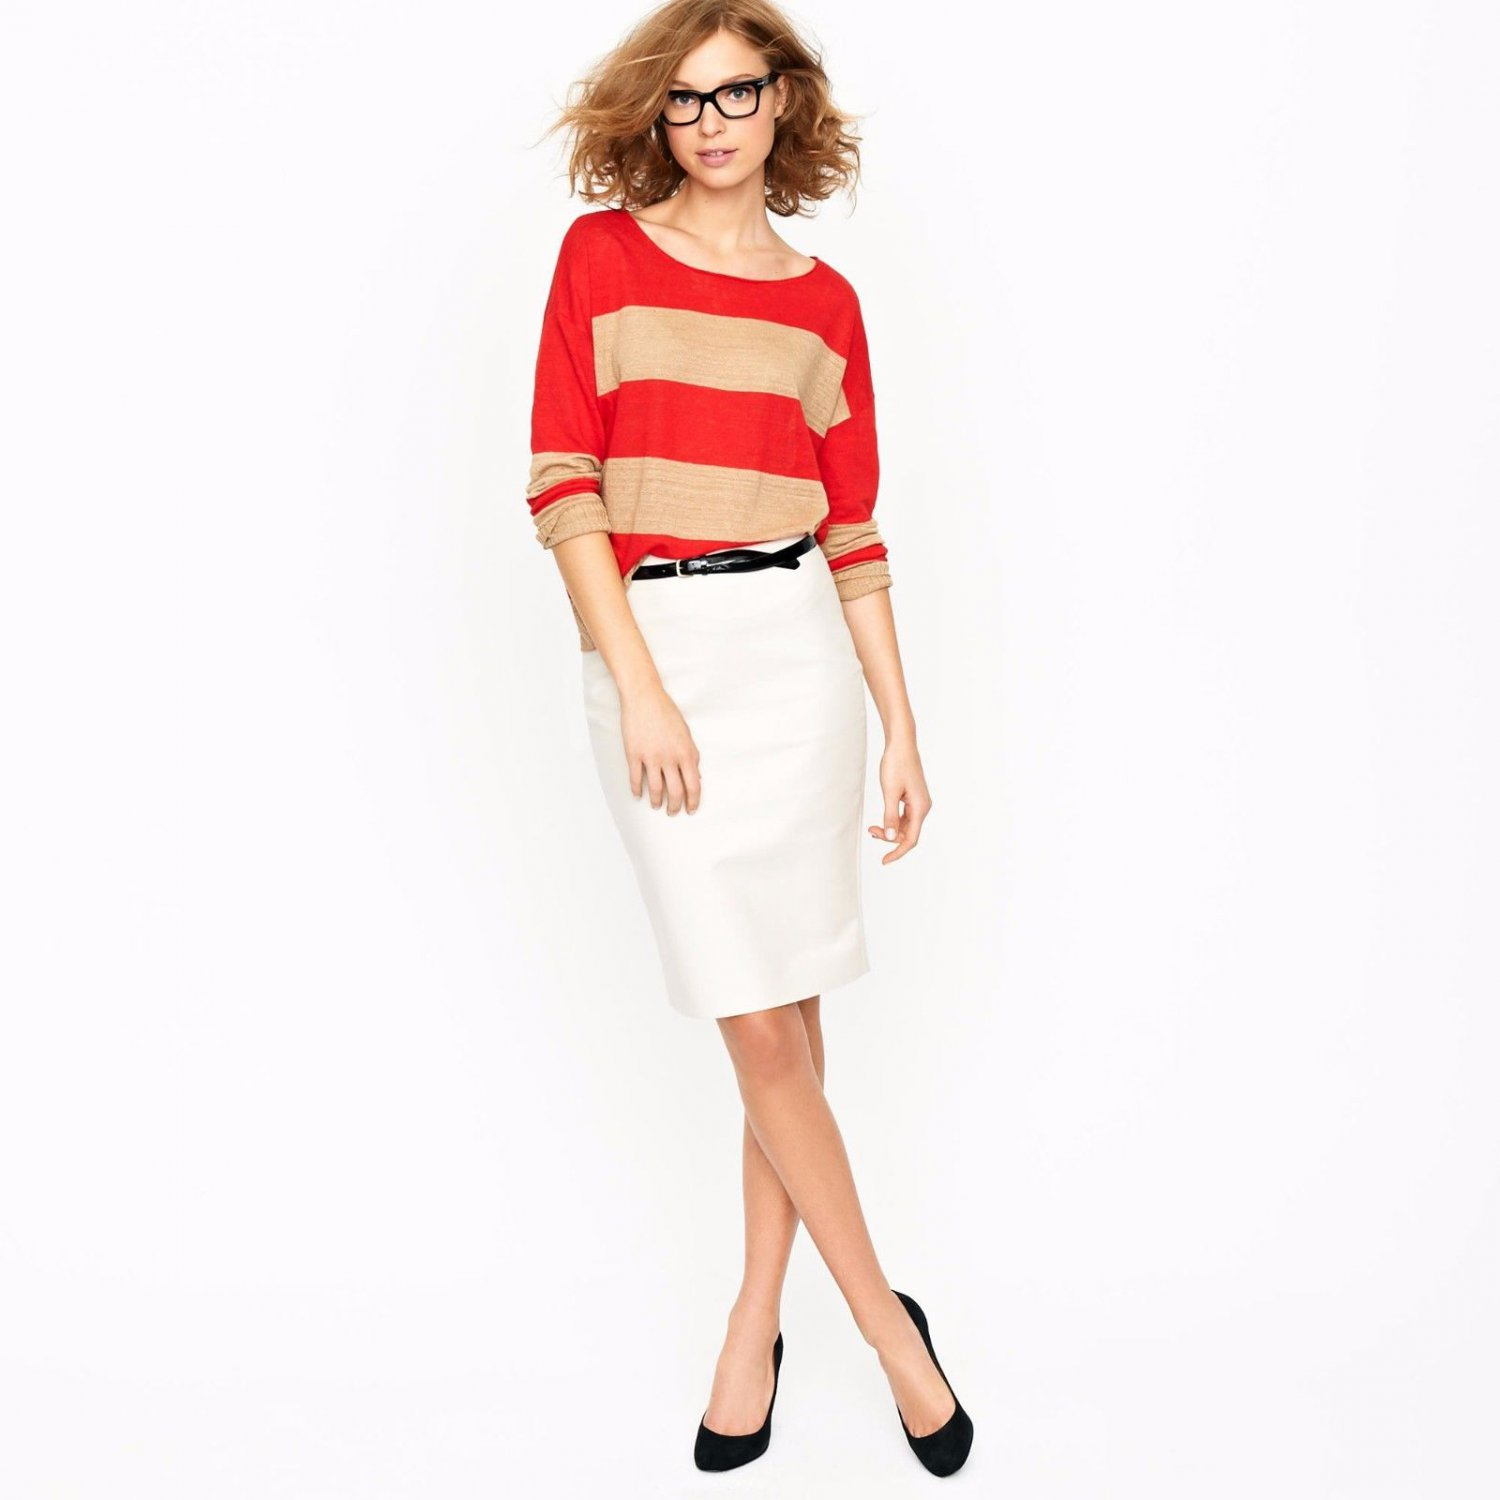 J CREW No. 2 pencil skirt in double-serge cotton  Skirt  6